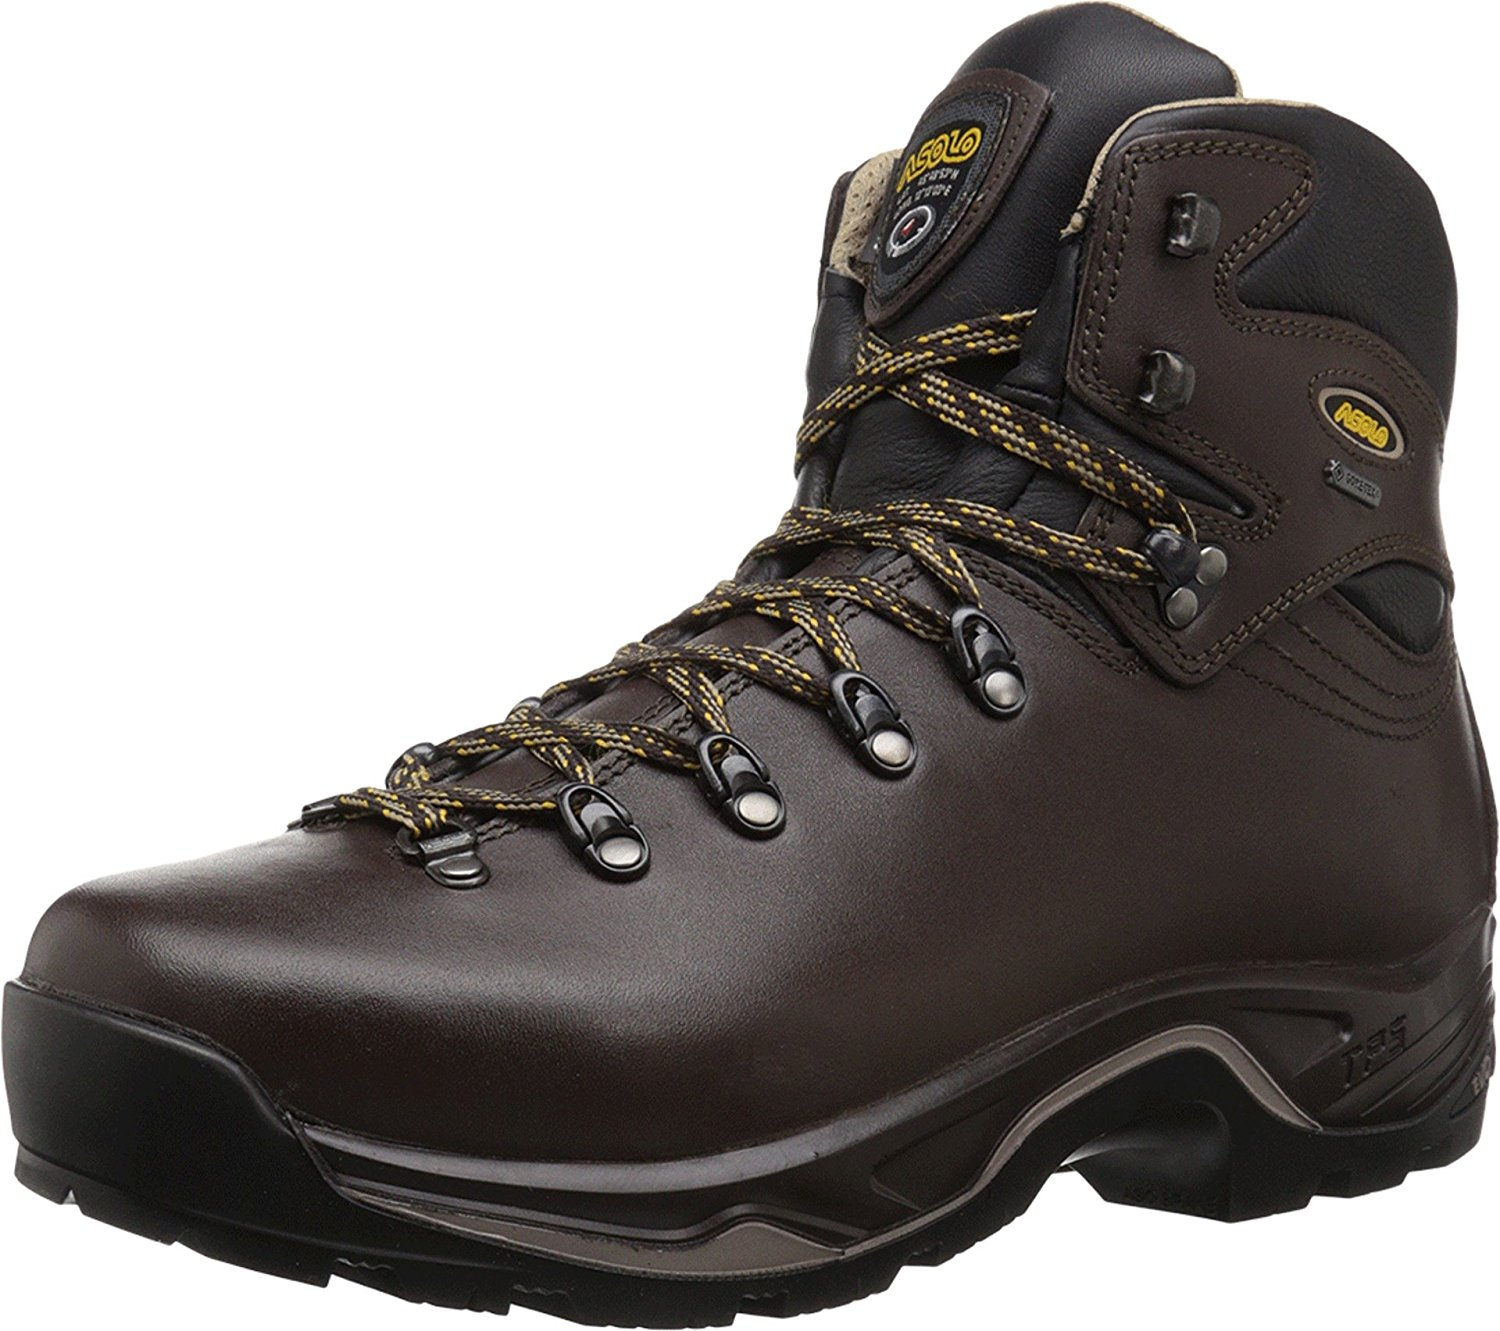 Canada Cheap Hiking Canada Find Boots Asolo gp0prqB